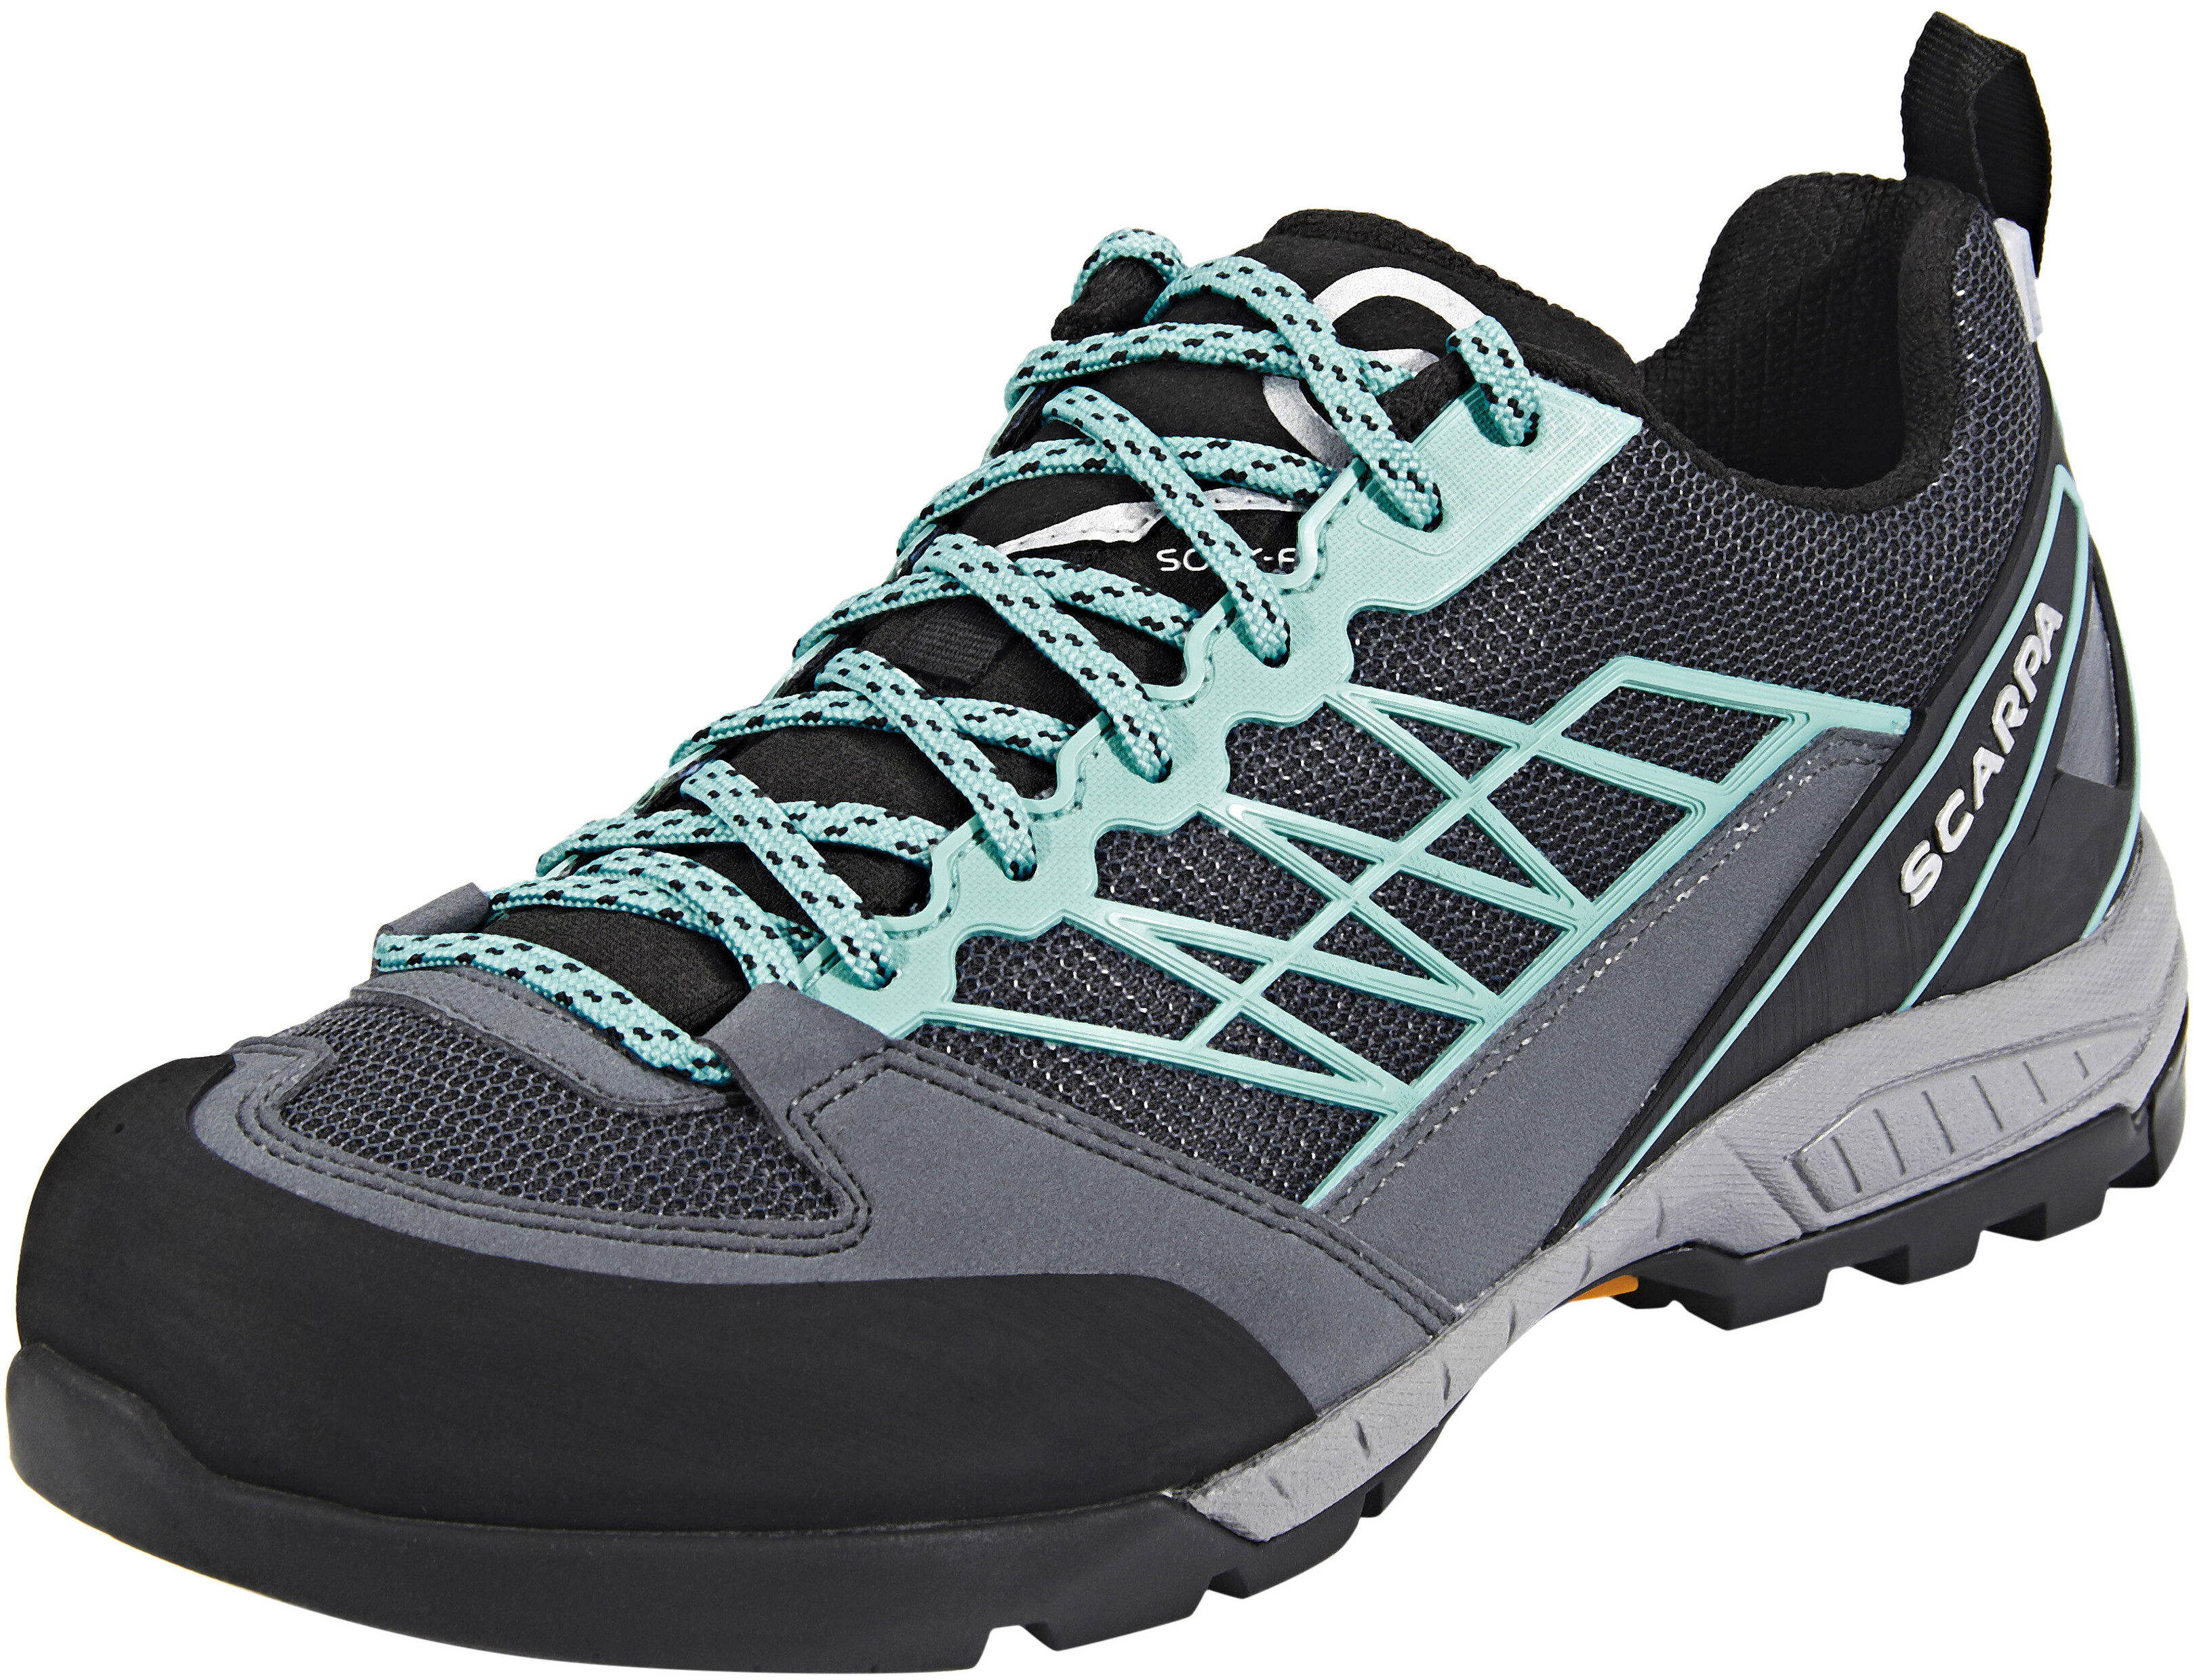 Turquoise And Gray Nike Shoes